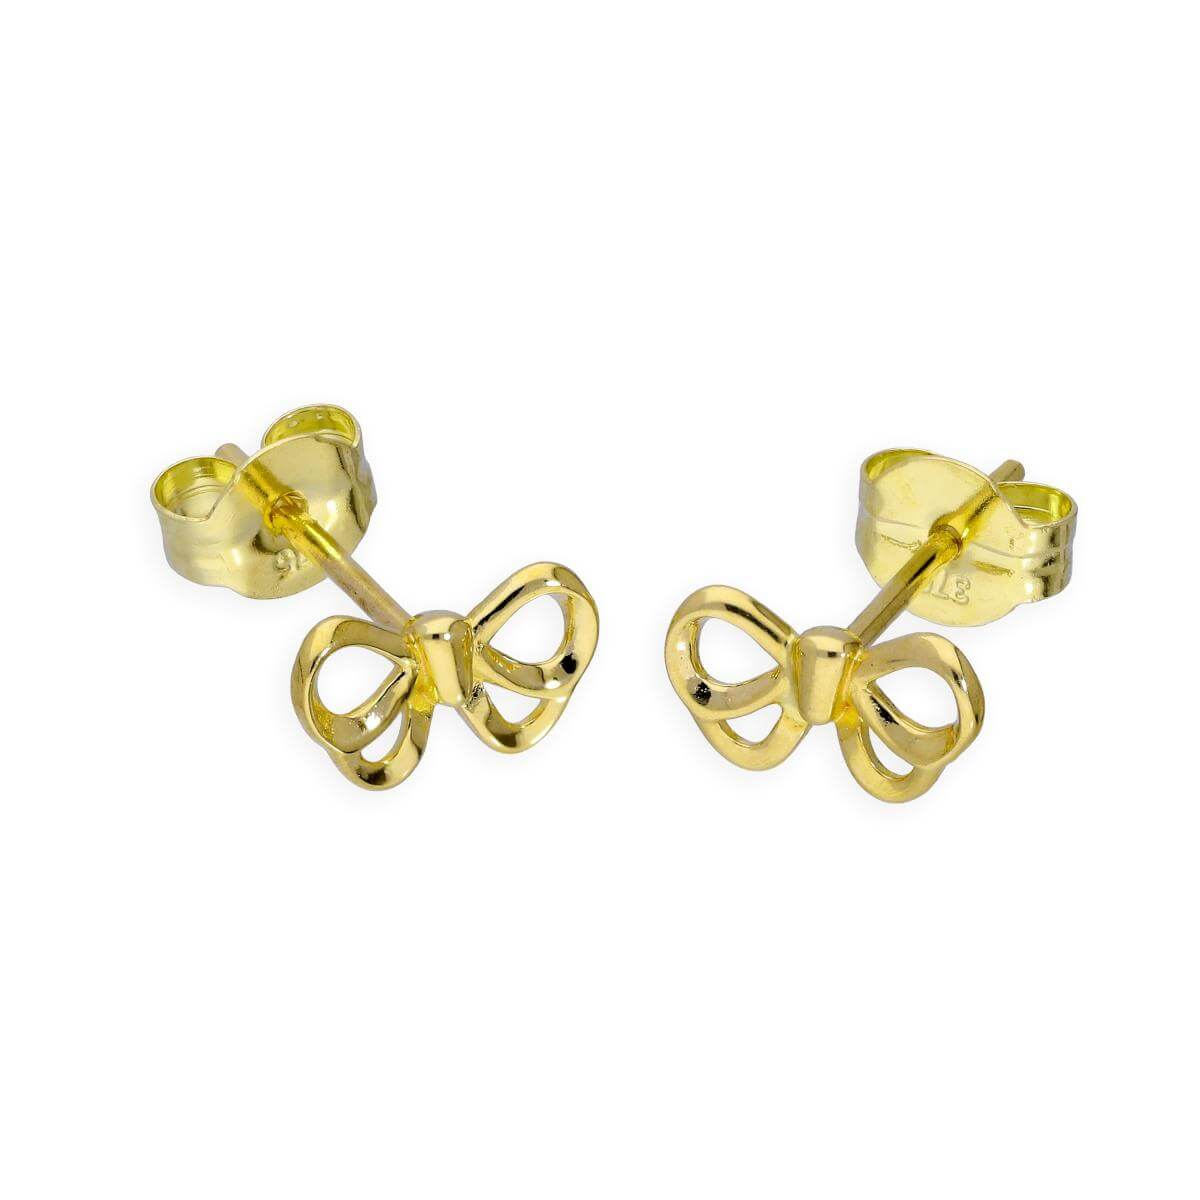 9ct Gold Ribbon Bow Stud Earrings